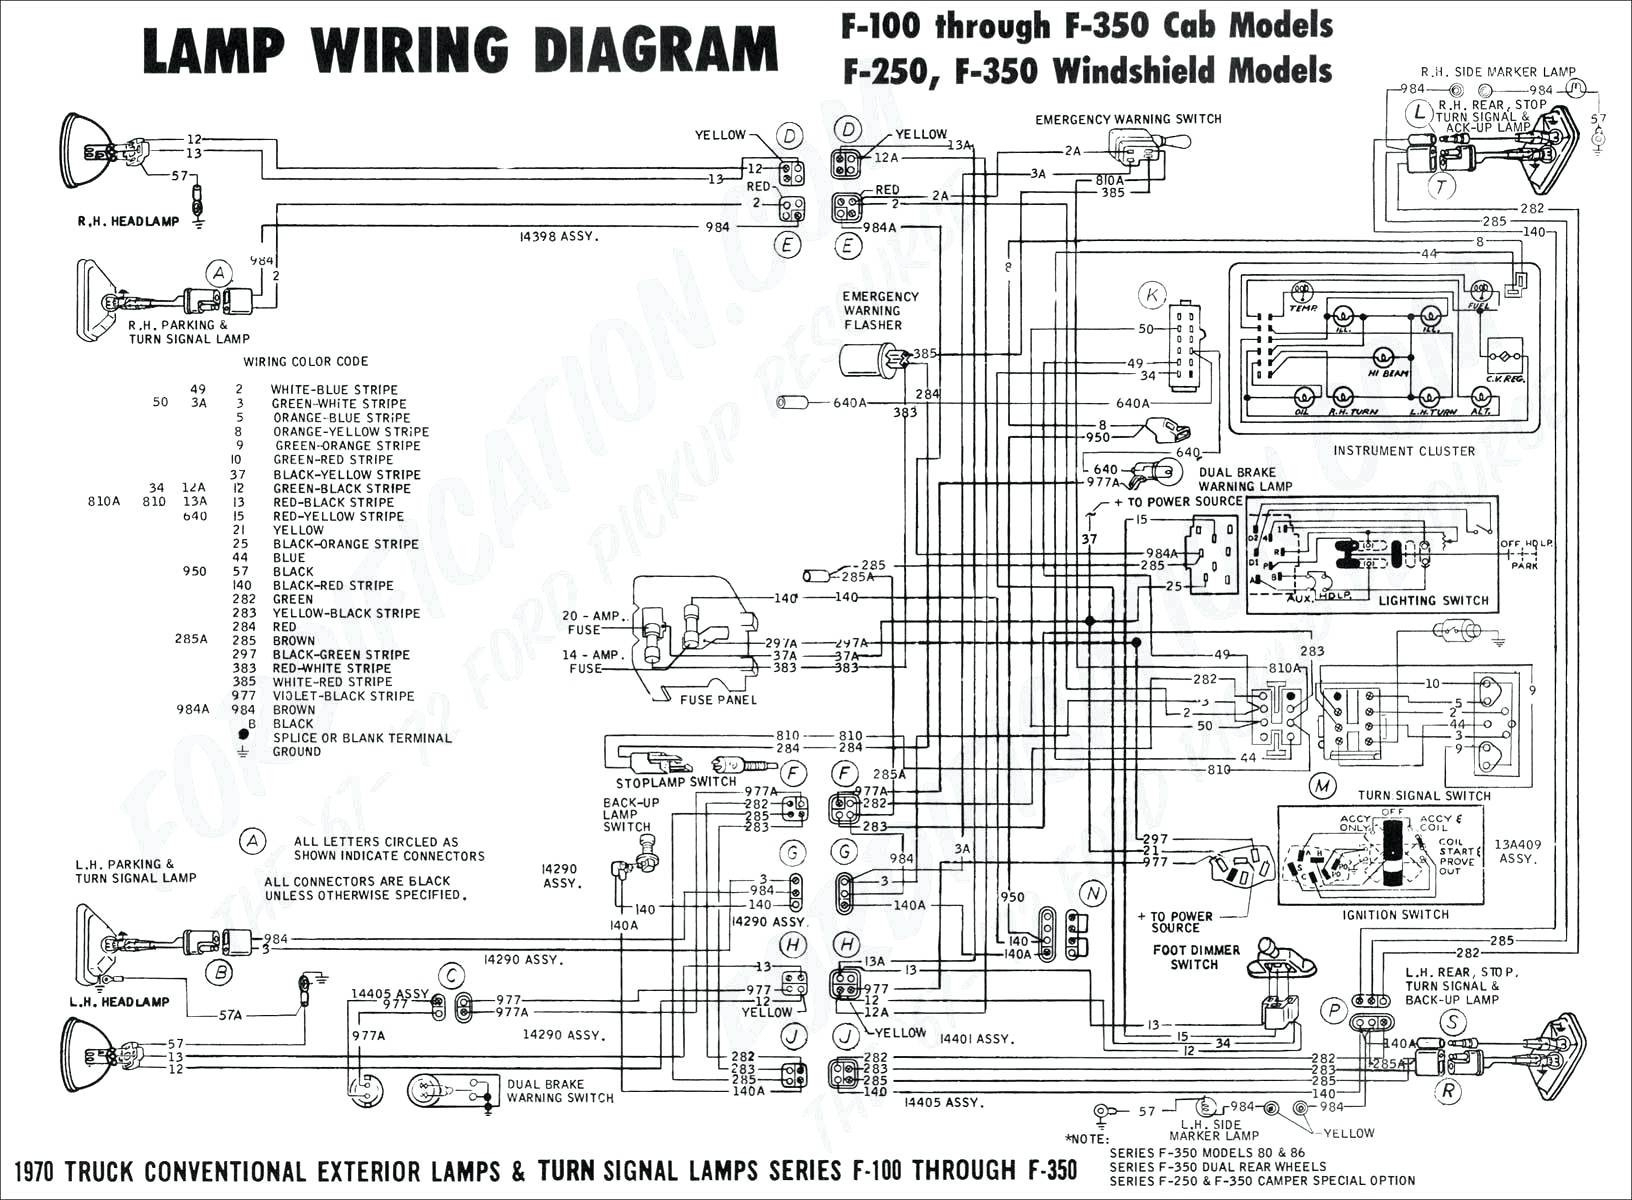 2014 Chevy Silverado Trailer Wiring Diagram